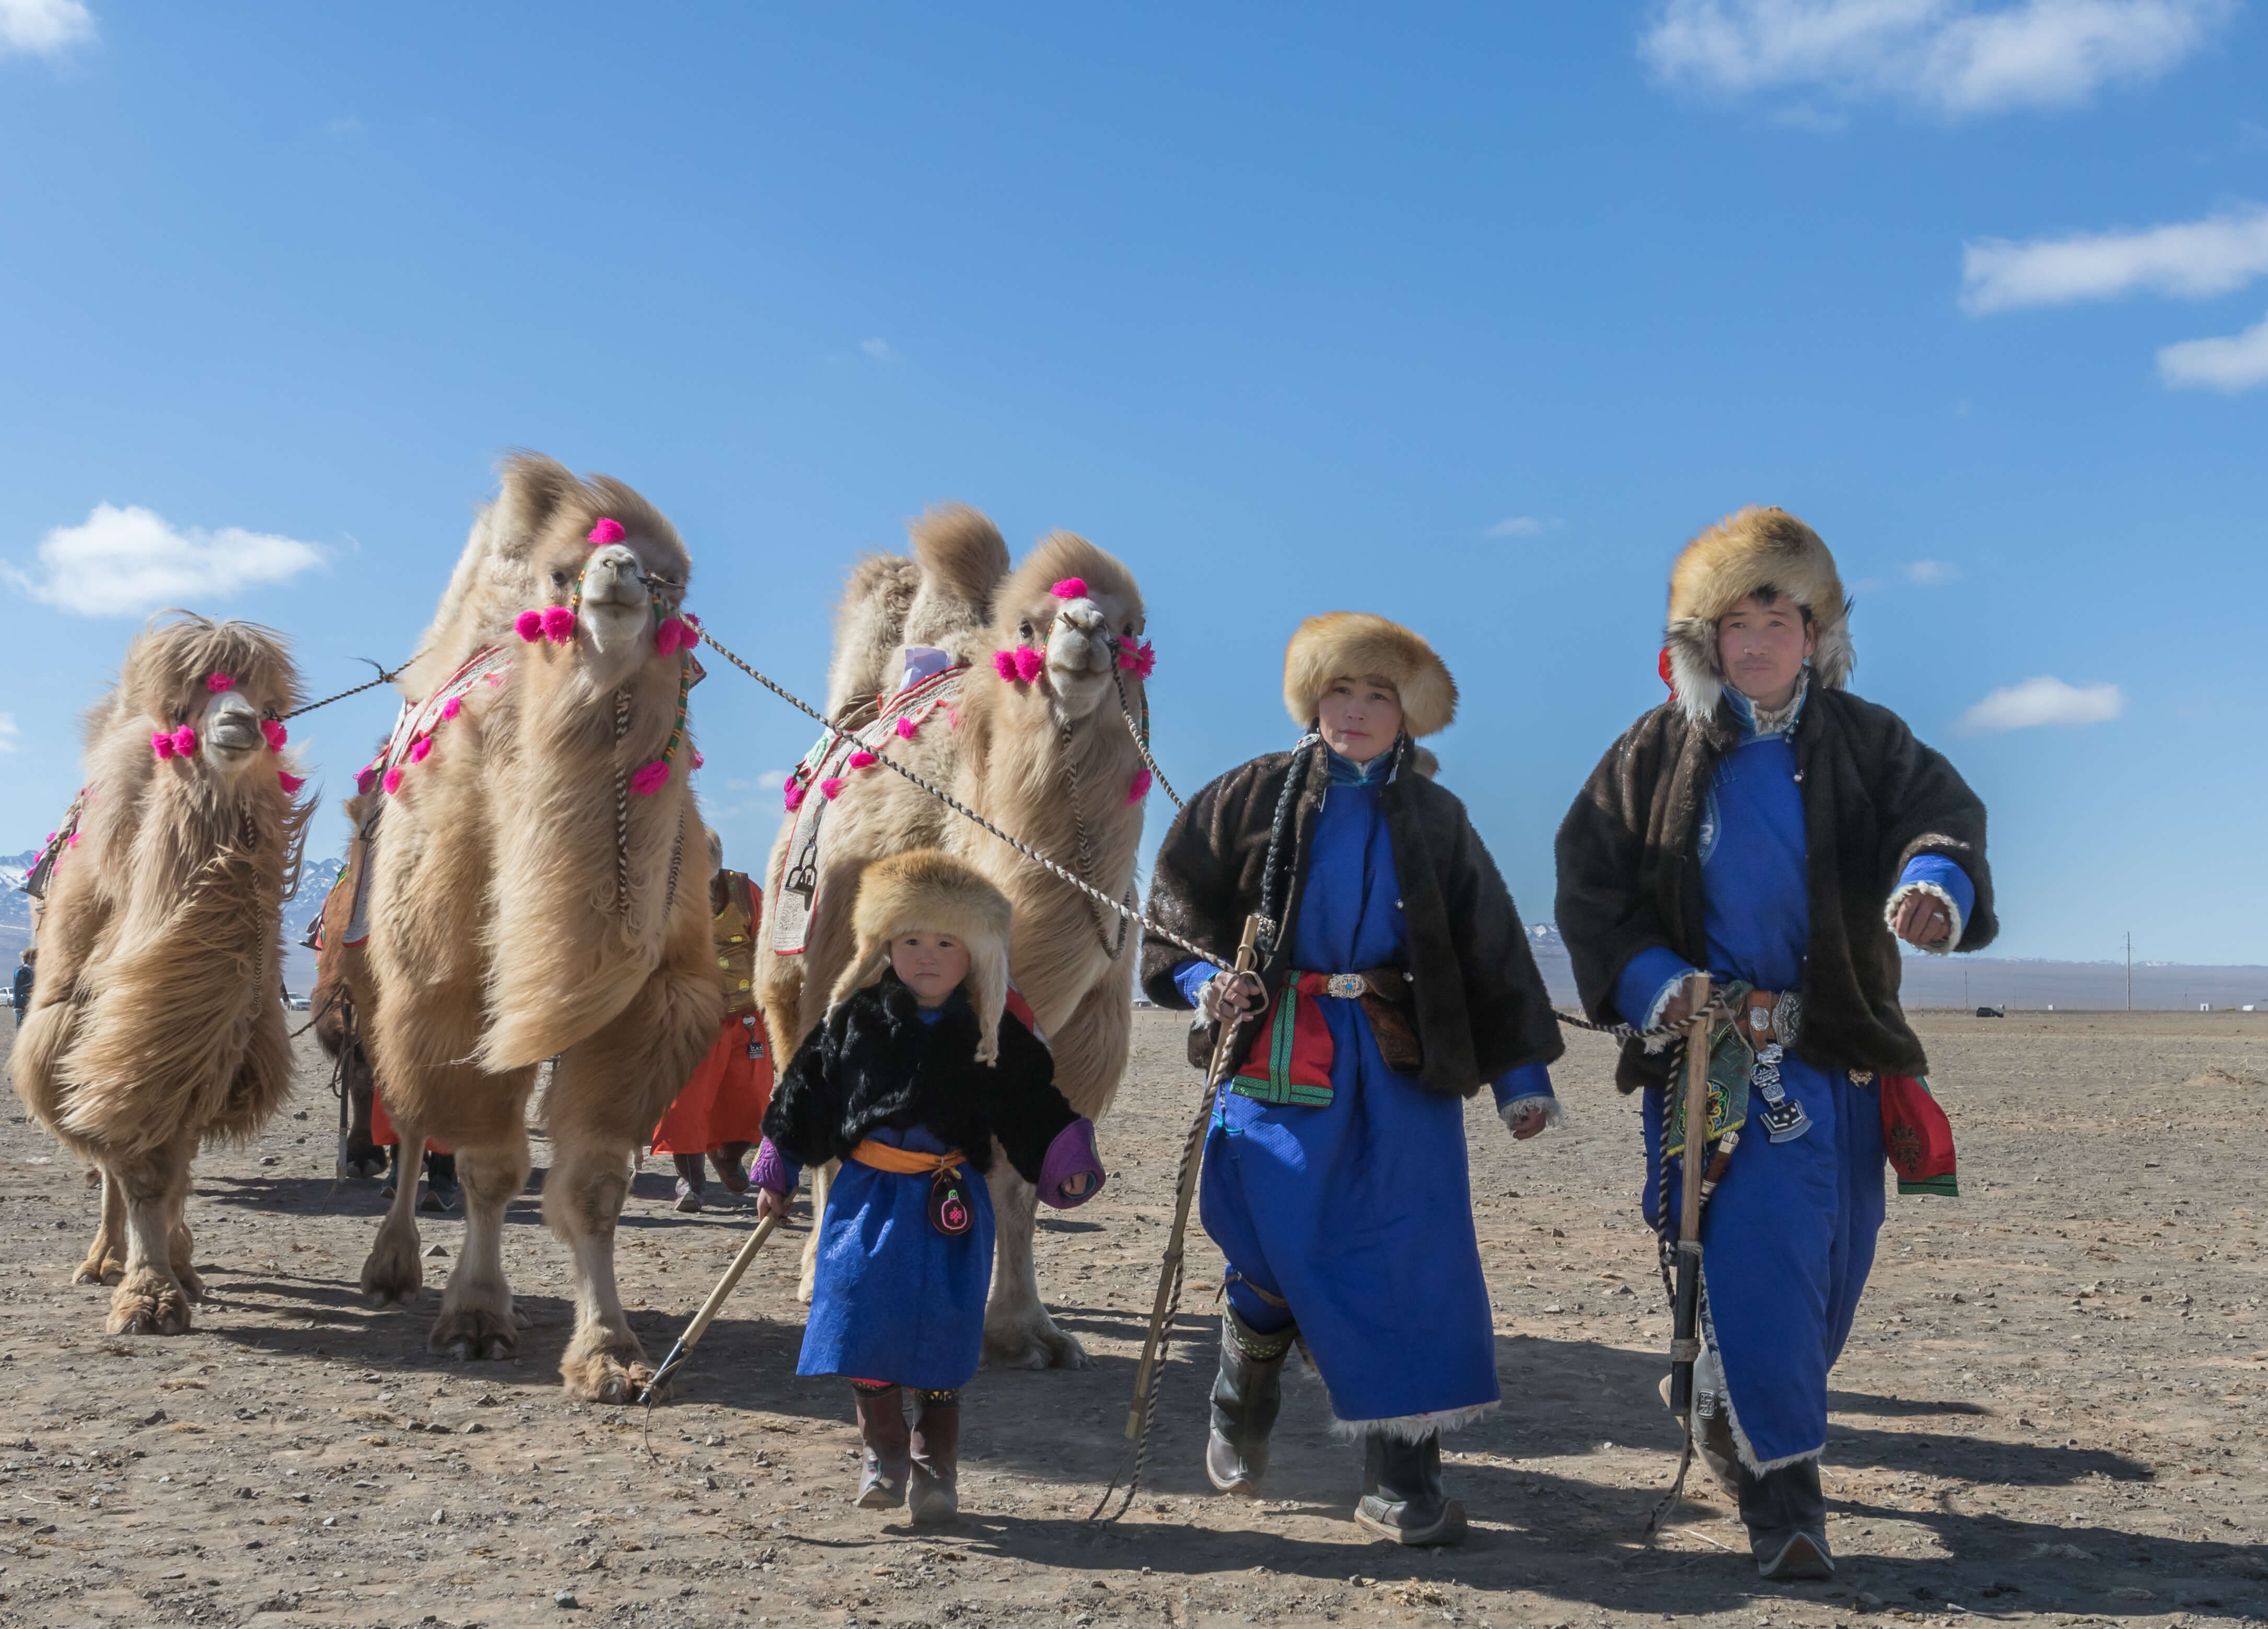 Camel riding in Mongolia